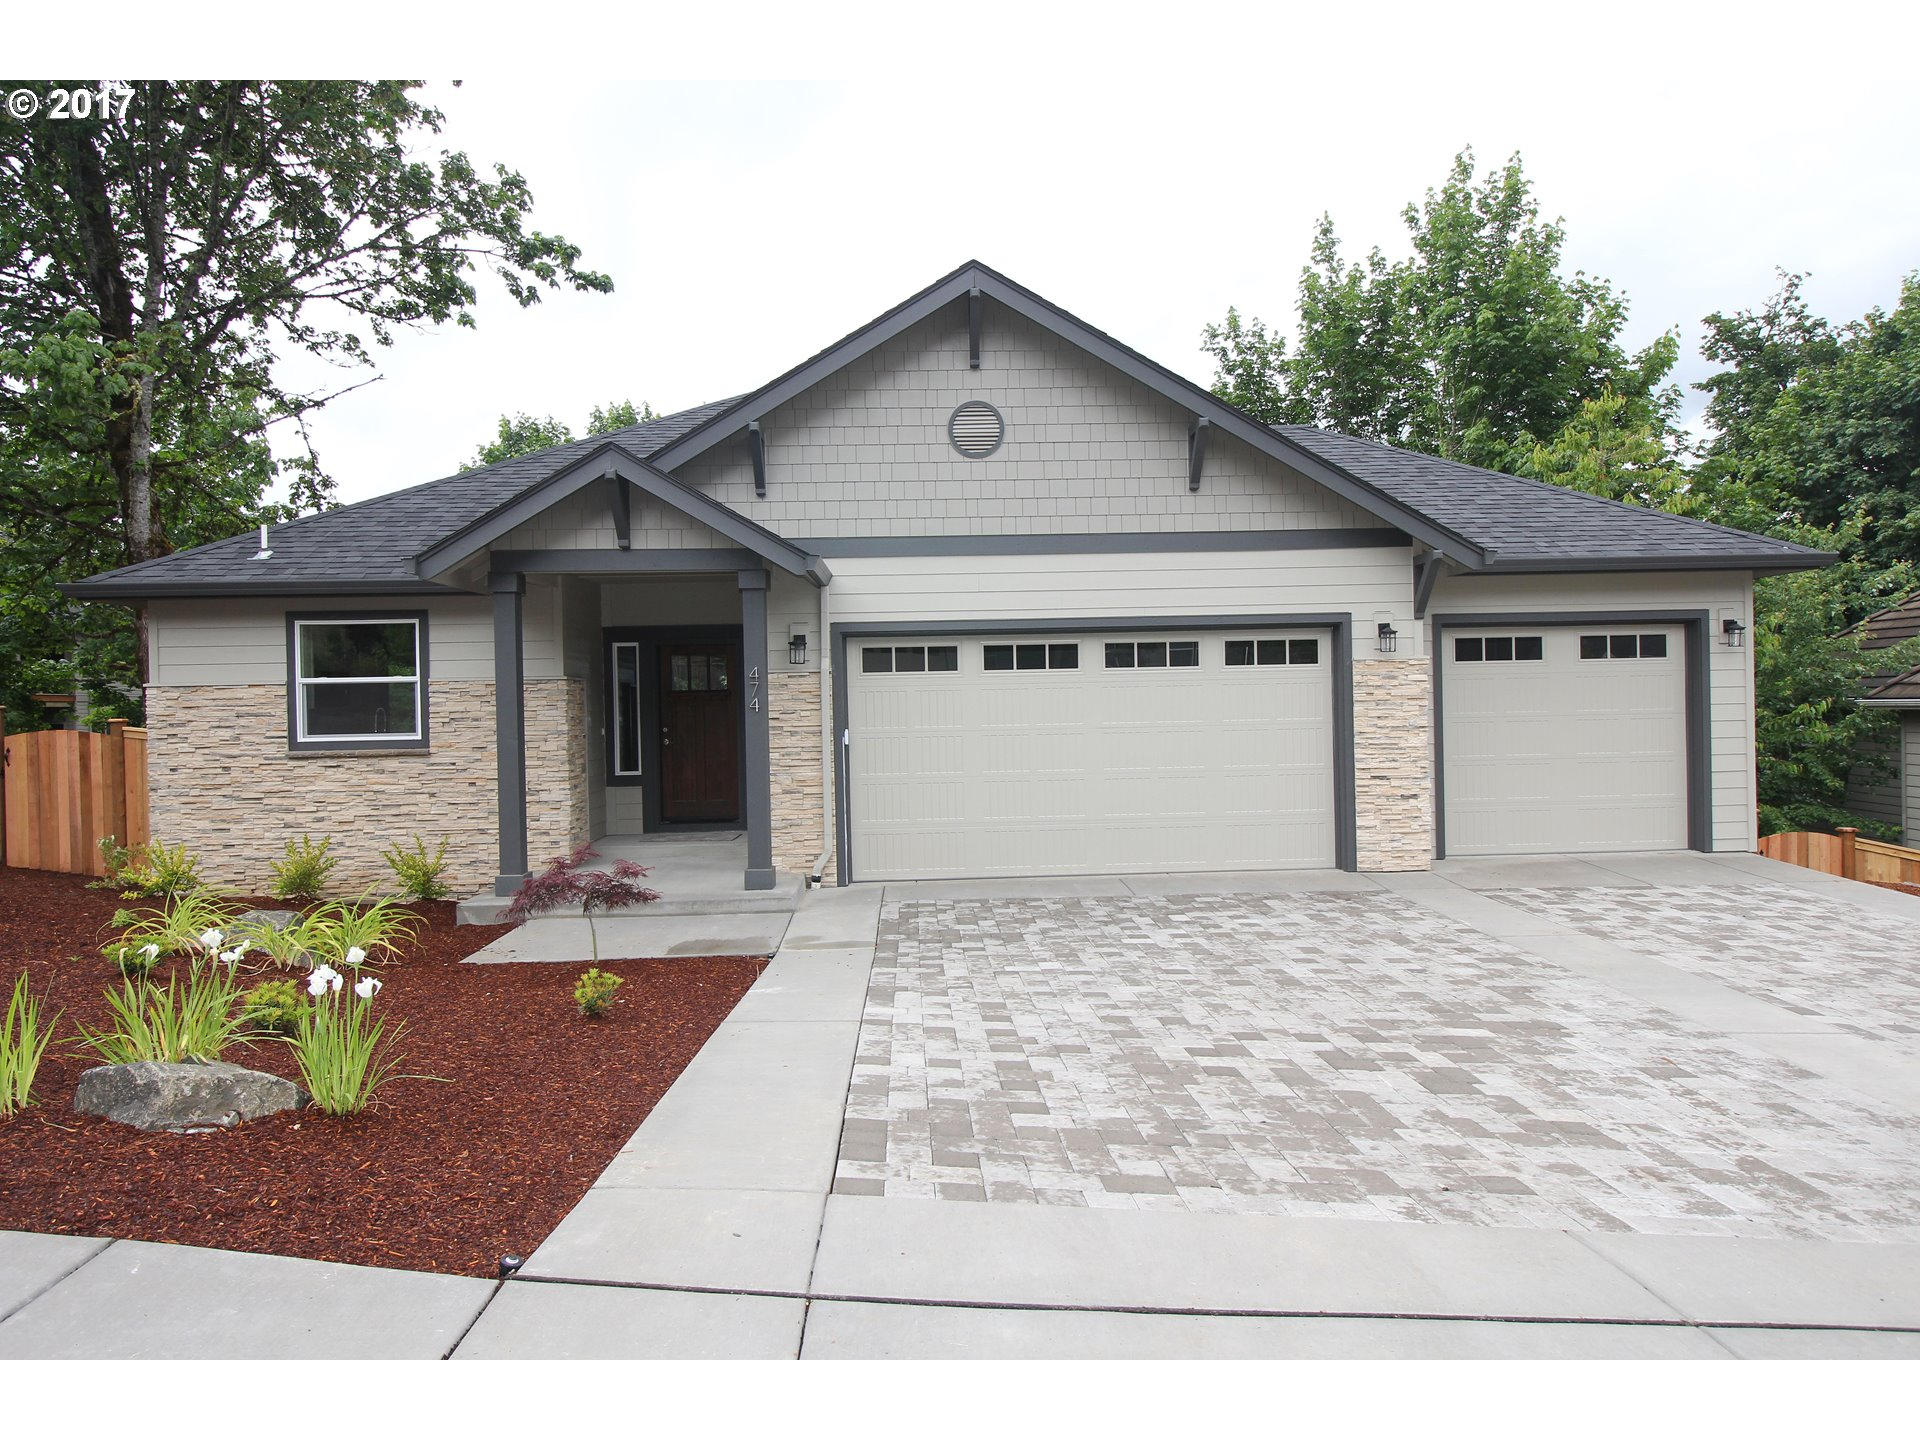 474 MOUNTAINGATE DR, Springfield, OR 97478